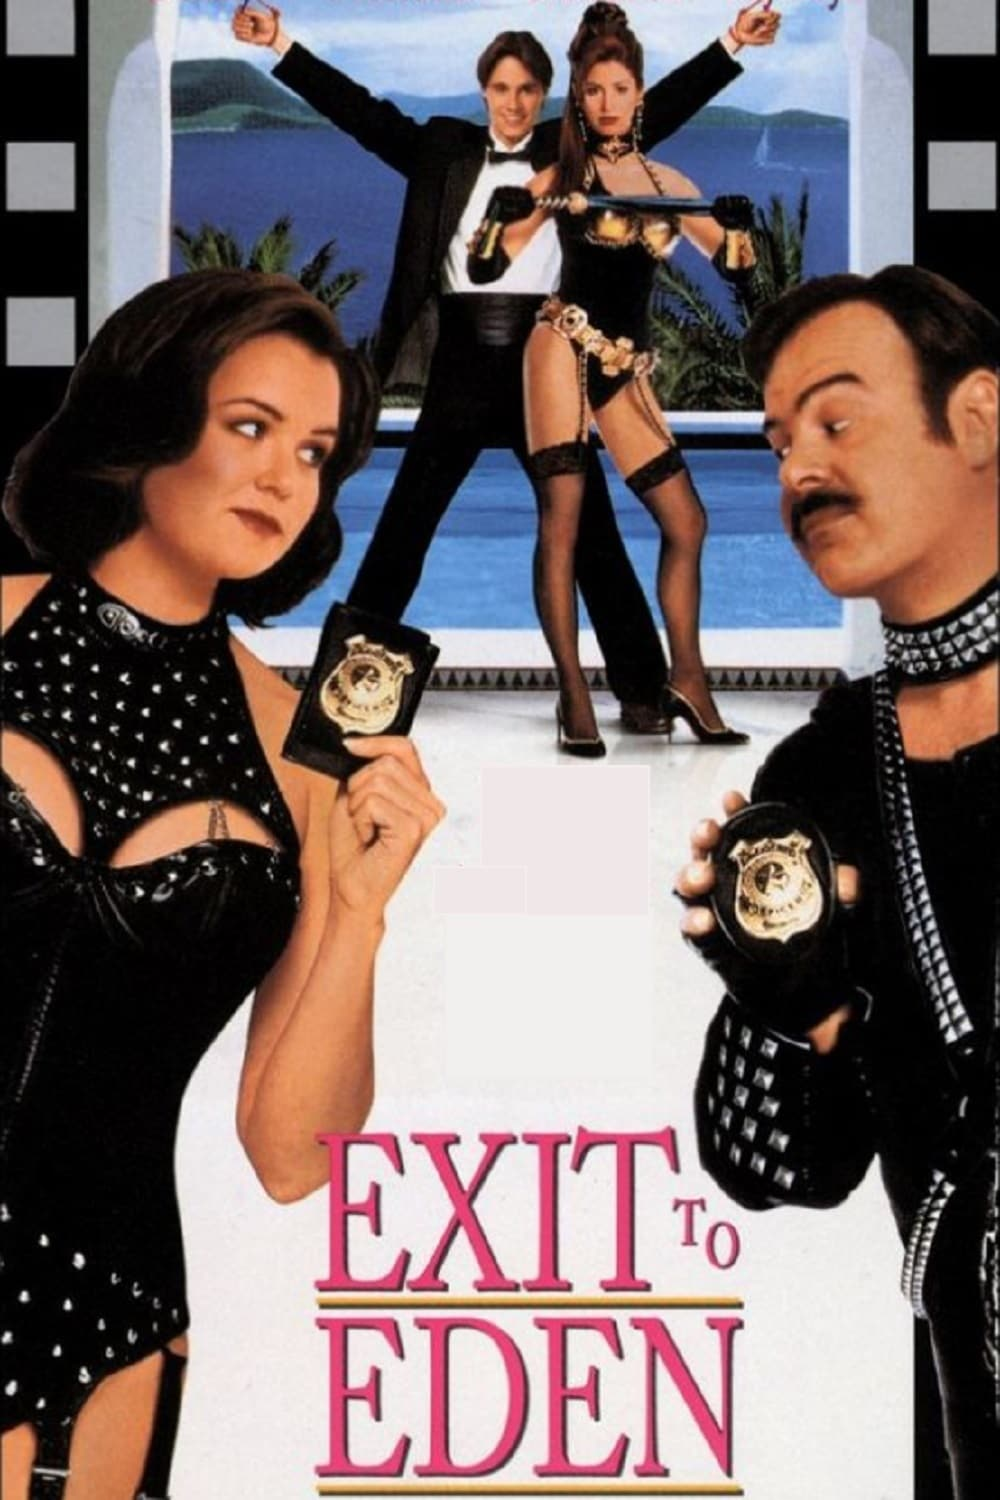 Exit to eden movie